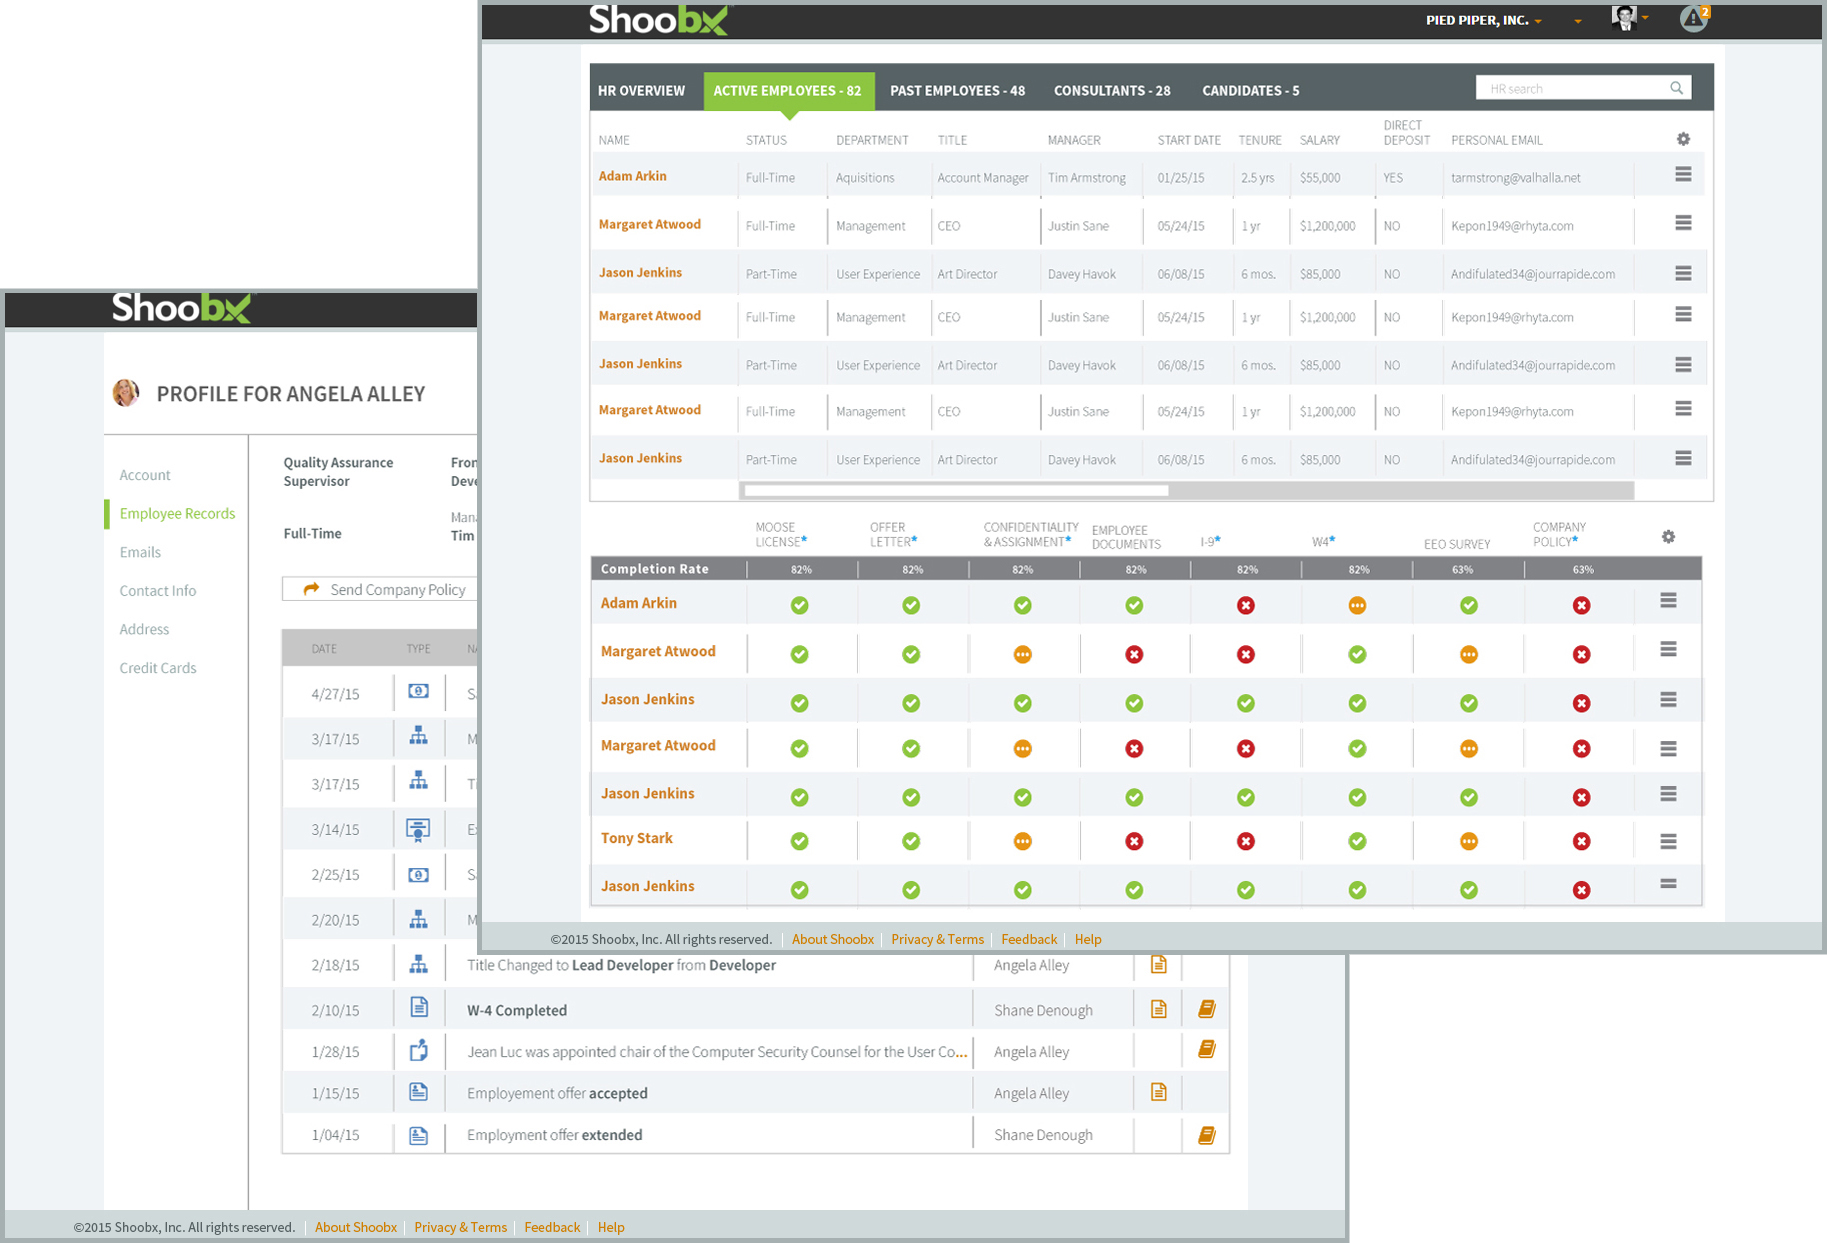 Human resources management screen